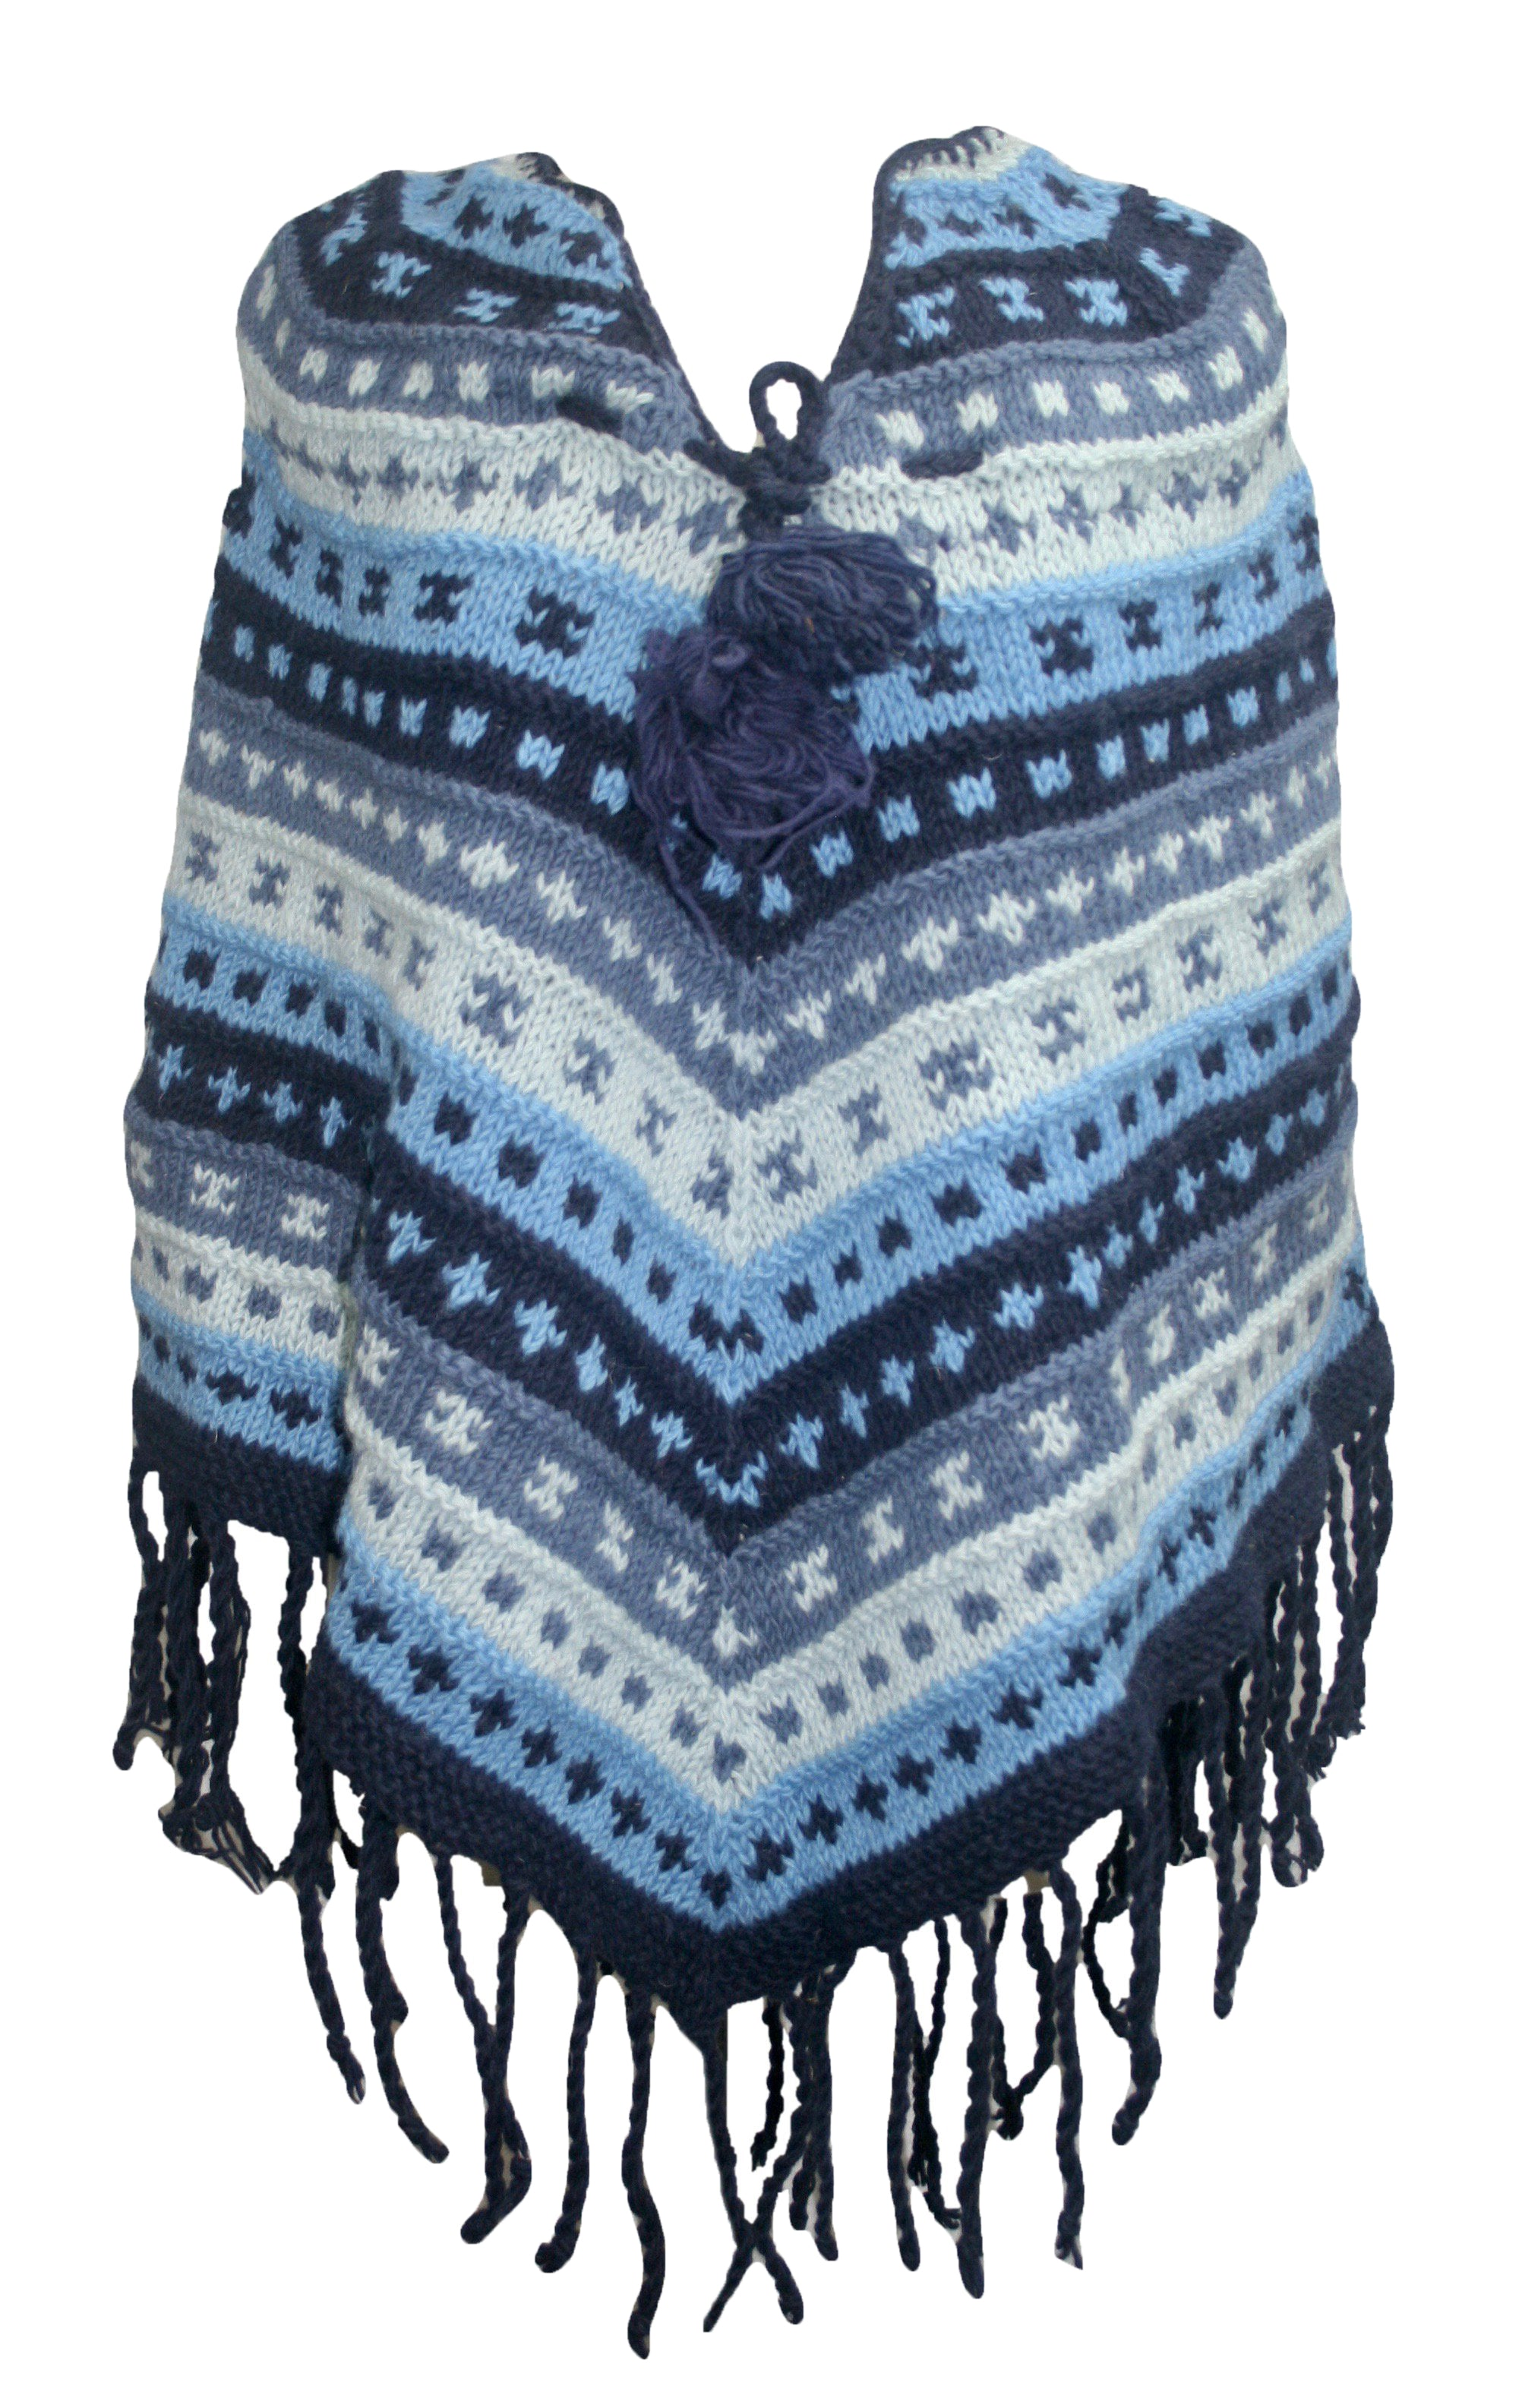 PN 200 Himalayan Thick Sheep Wool Hand Knitted Poncho - Agan Traders, PN 200 12